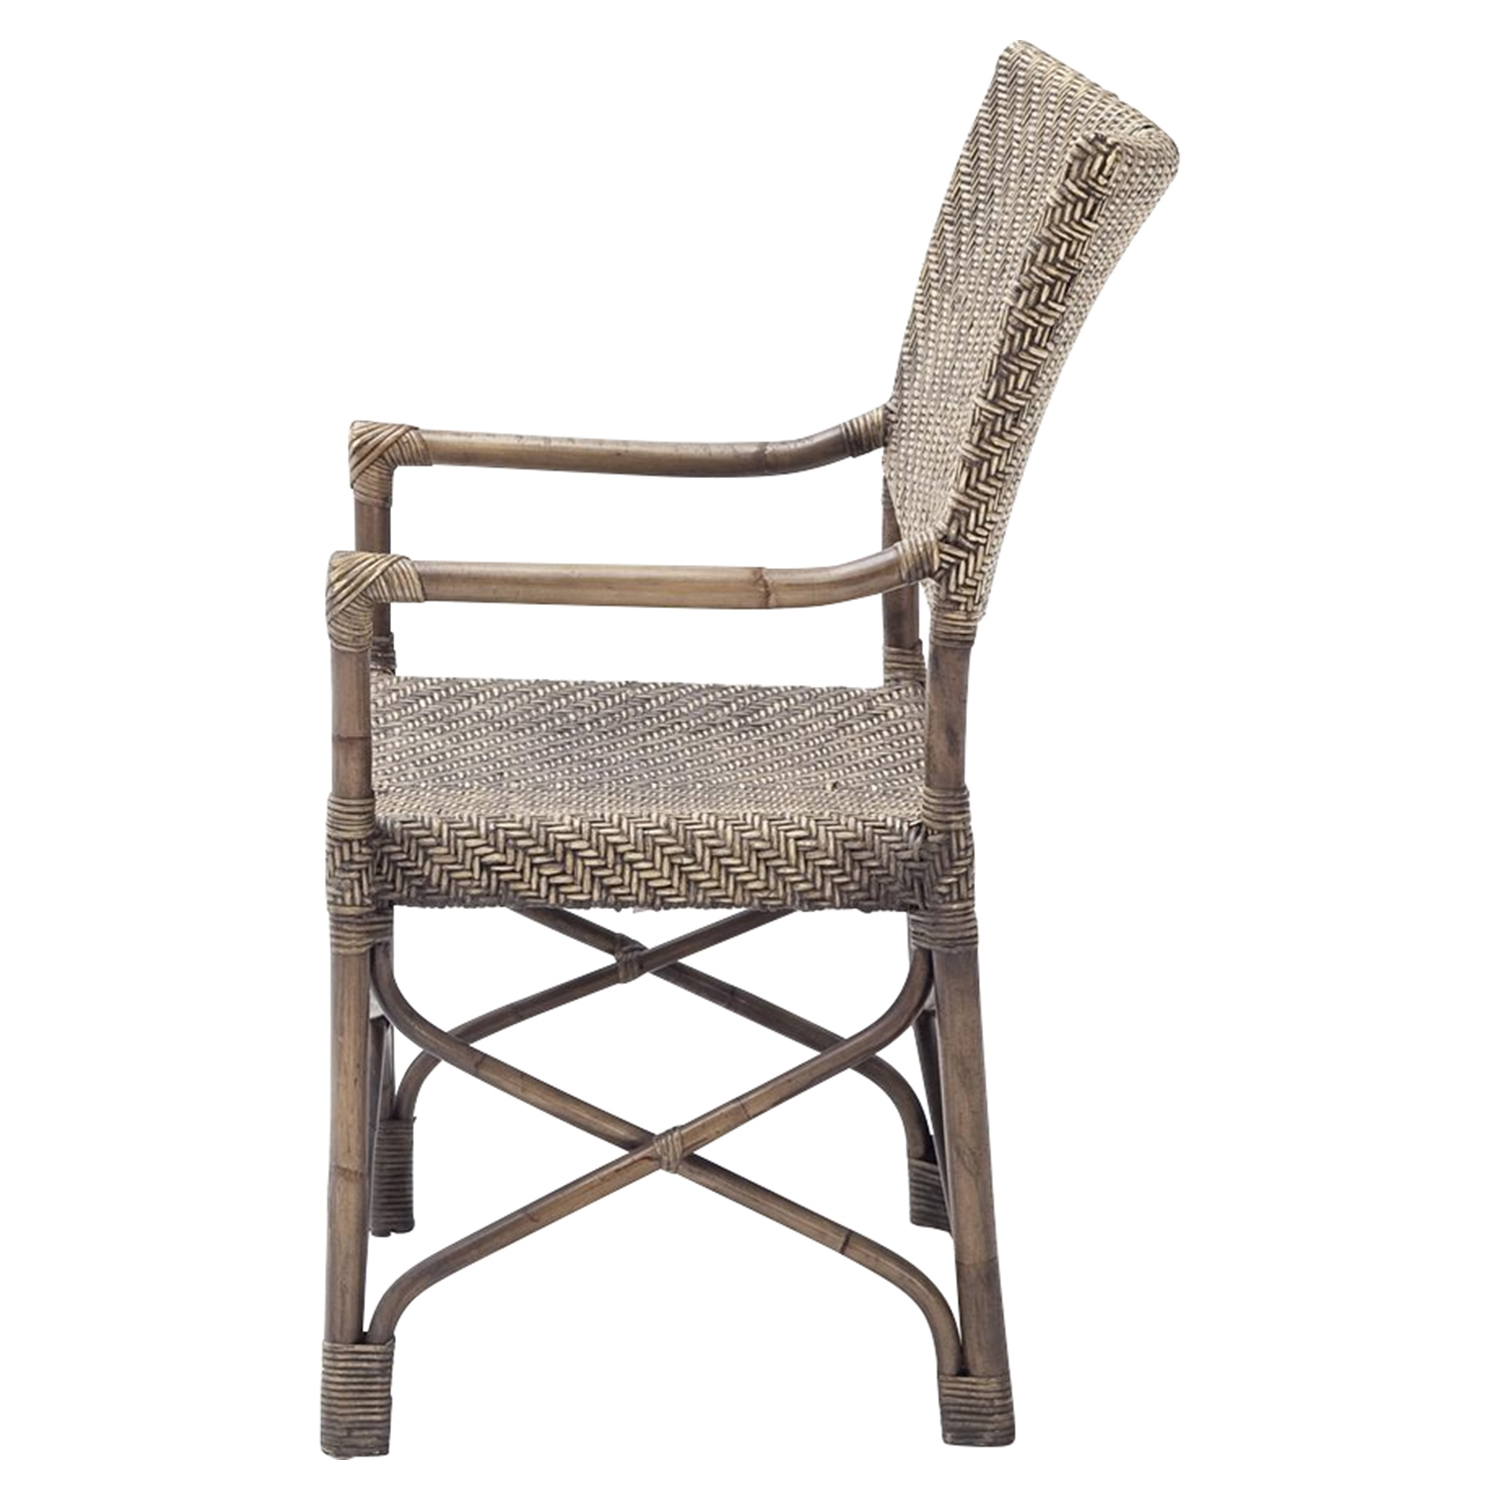 Wickerworks Squire Chair - Natural Rustic (Set of 2) - NSOLO-CR47